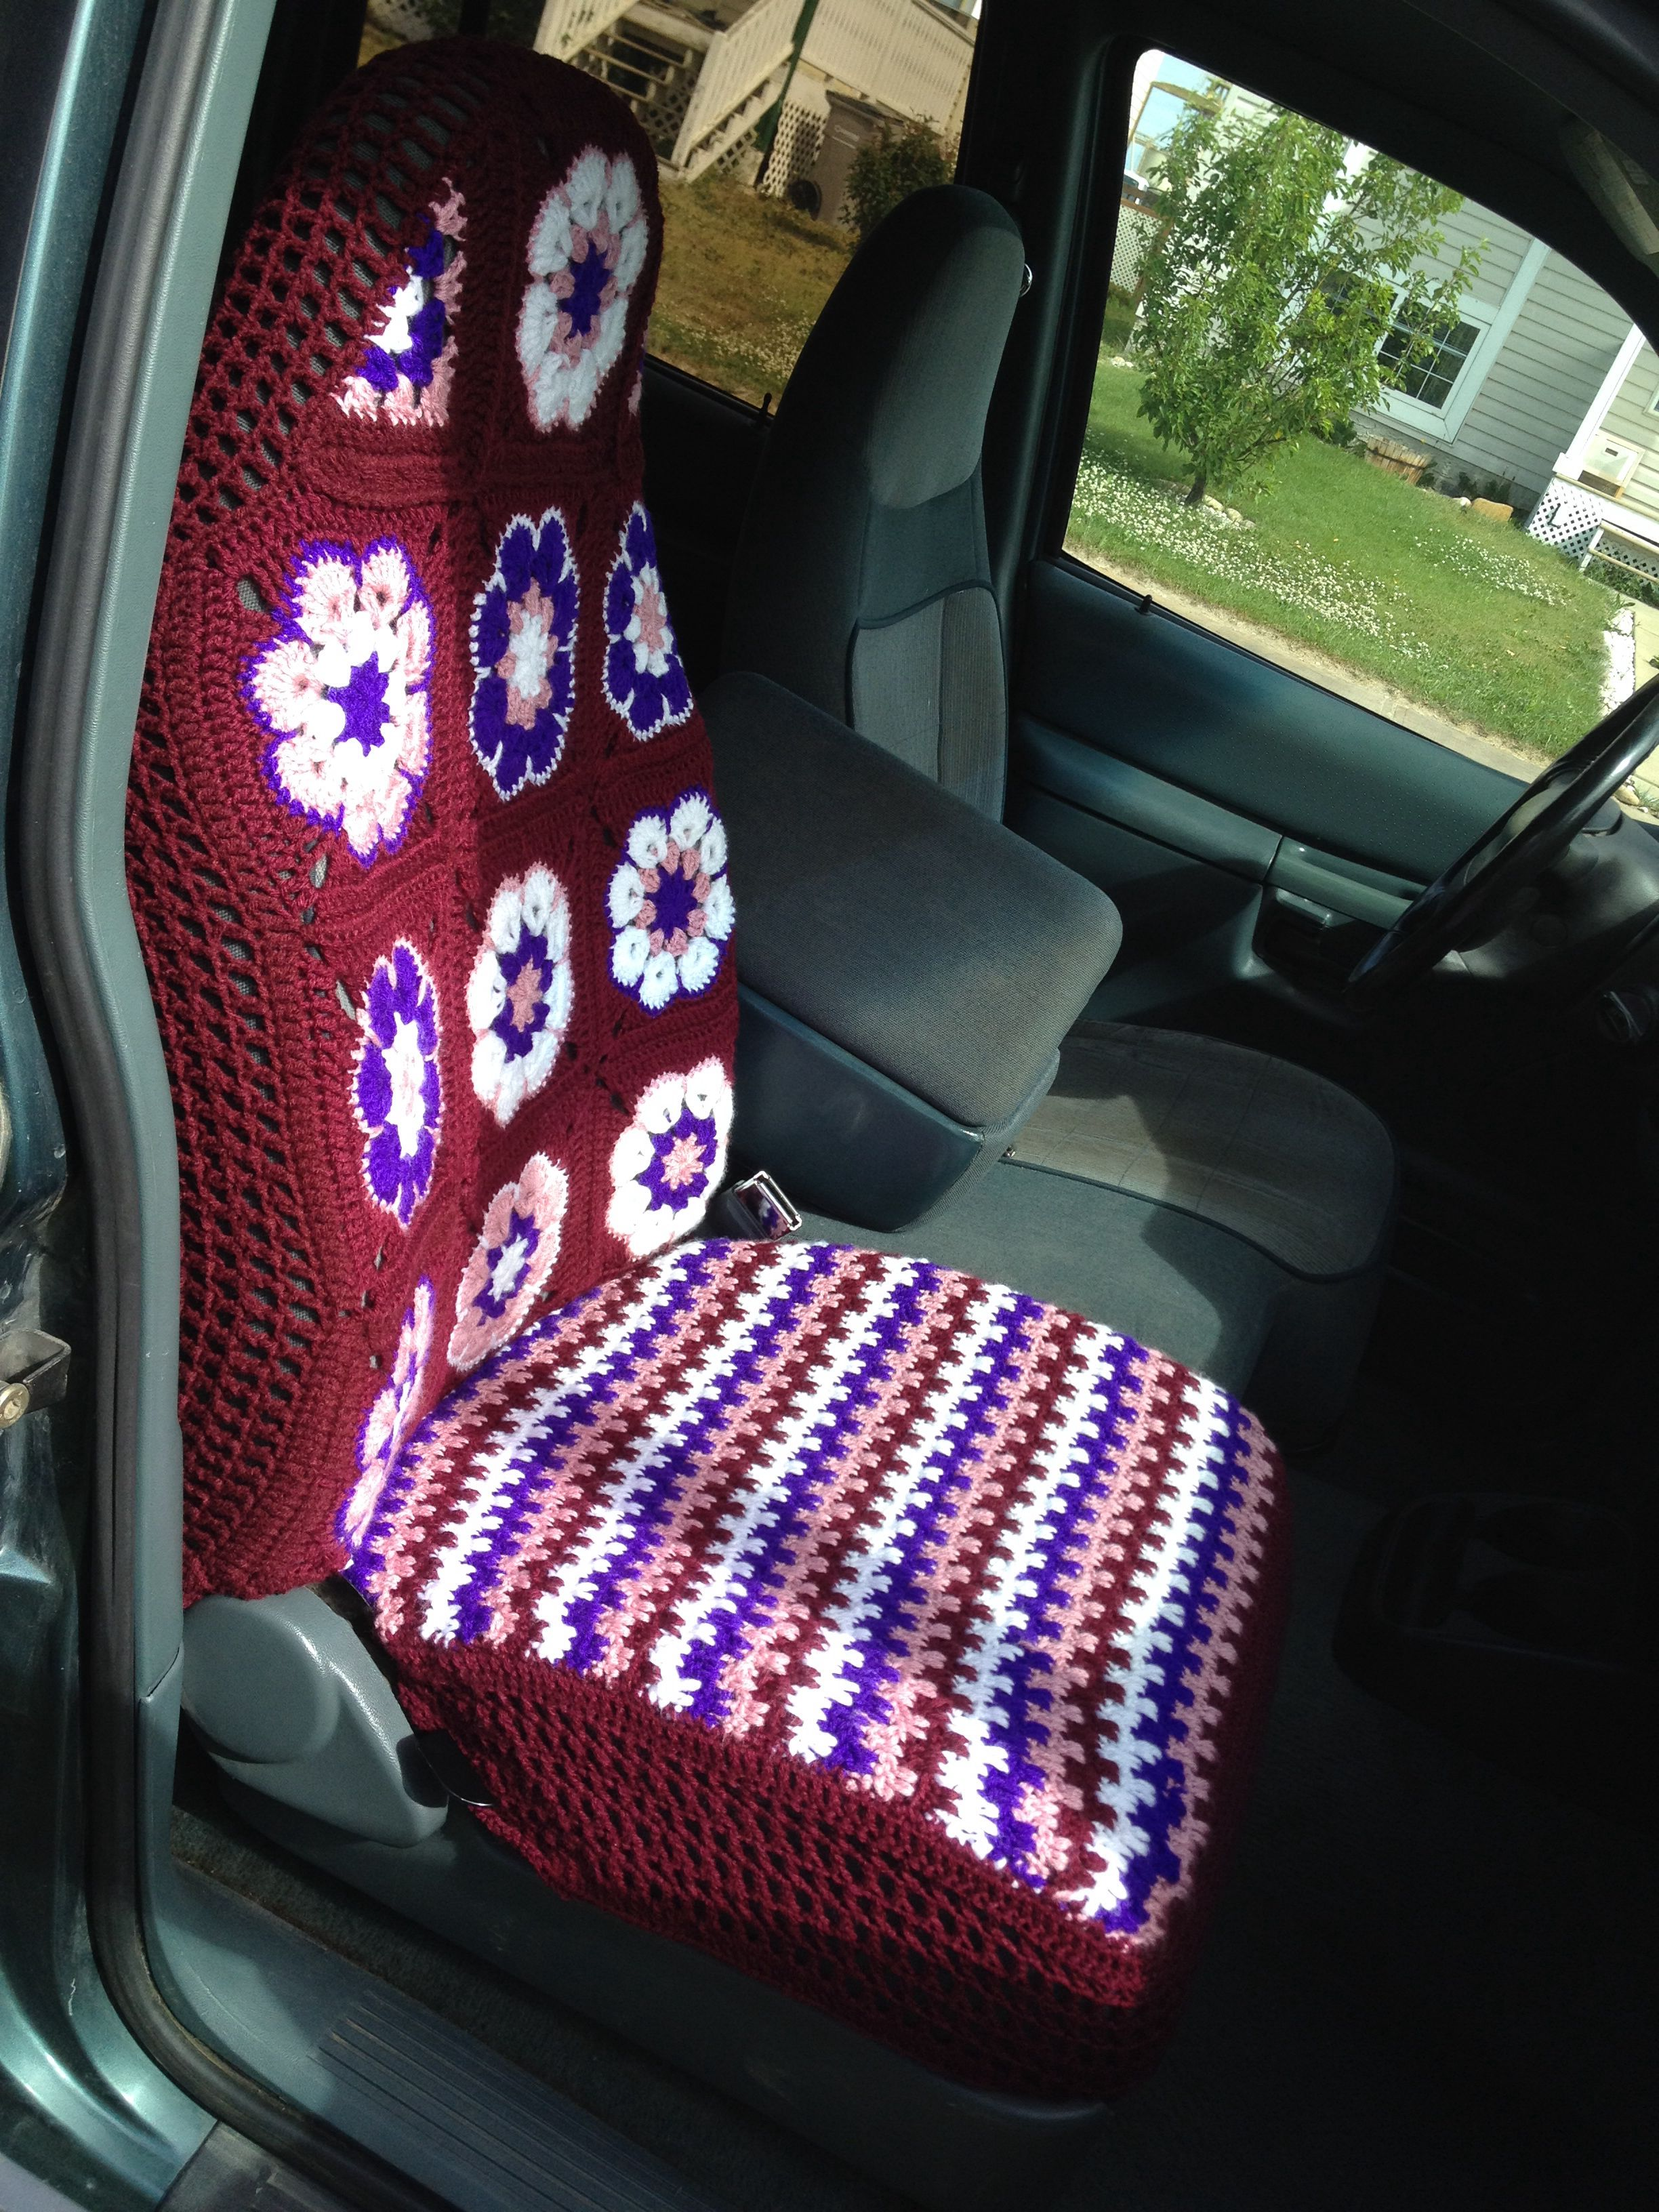 Crochet Car seat cover no pattern just winged it